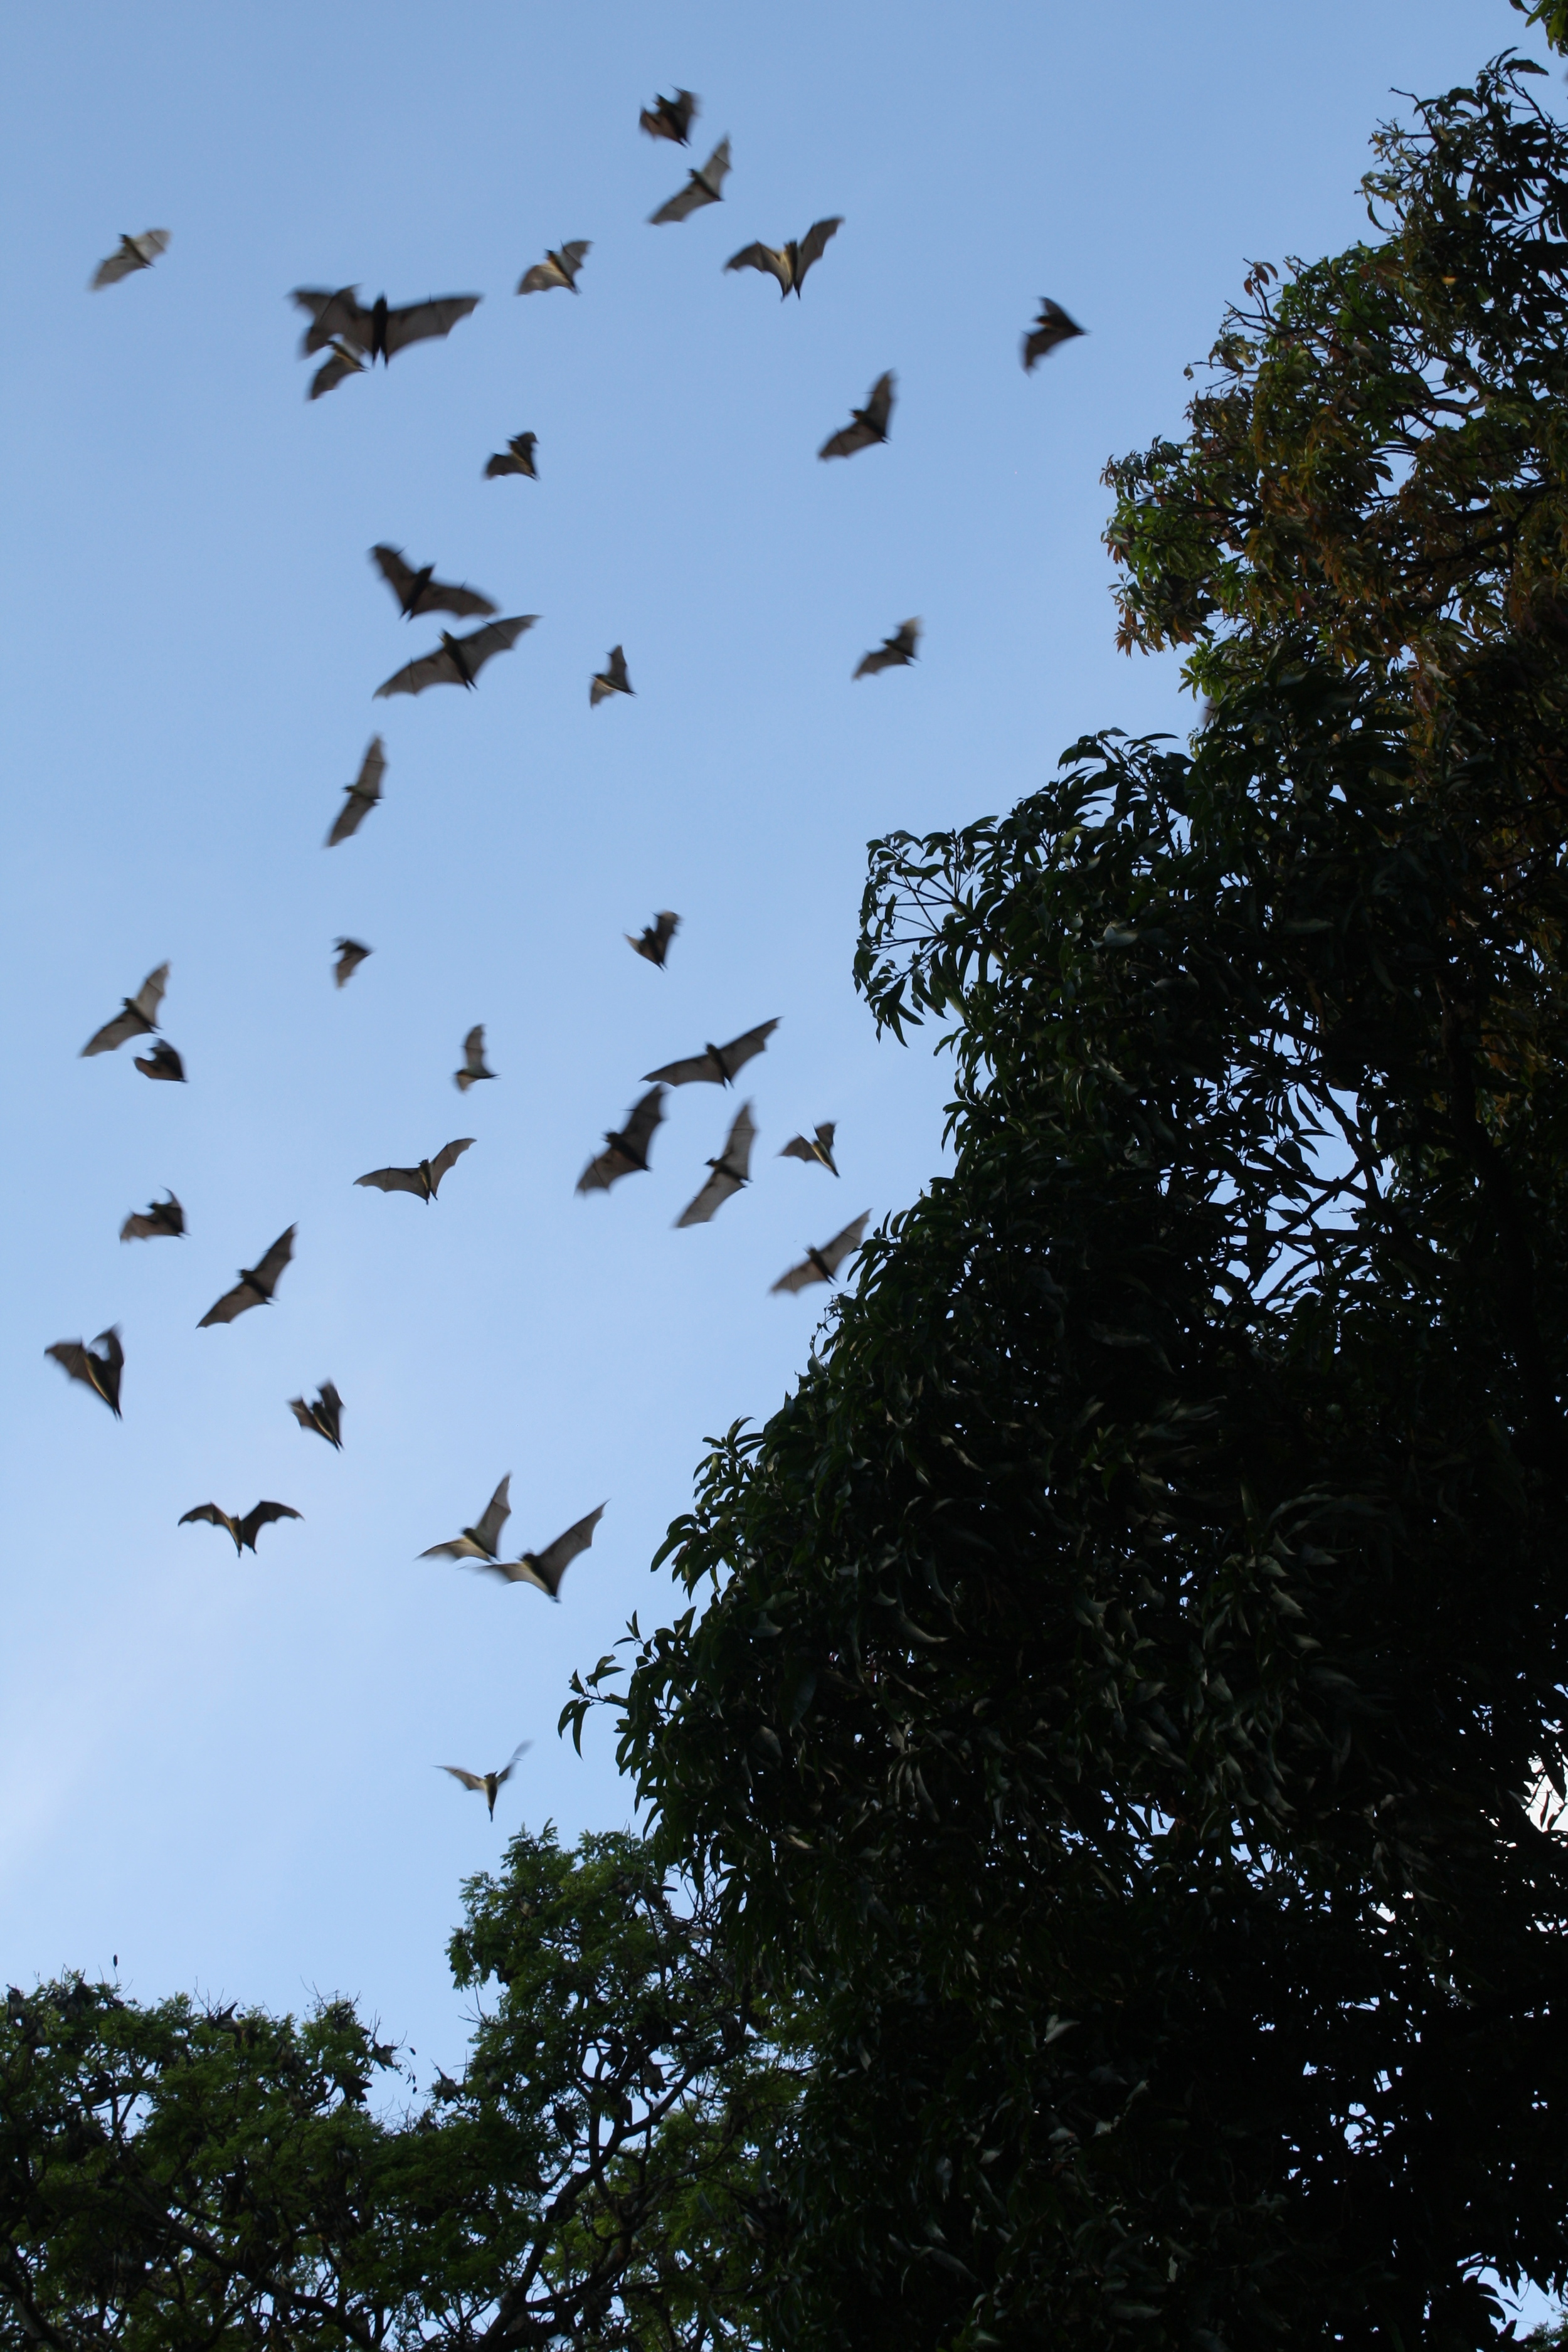 Fruit bats taking flight at dusk. Fruit bats play an essential role in pollination of many plant species, and it's easy to be awed by thousands of them flying together toward their feeding areas.